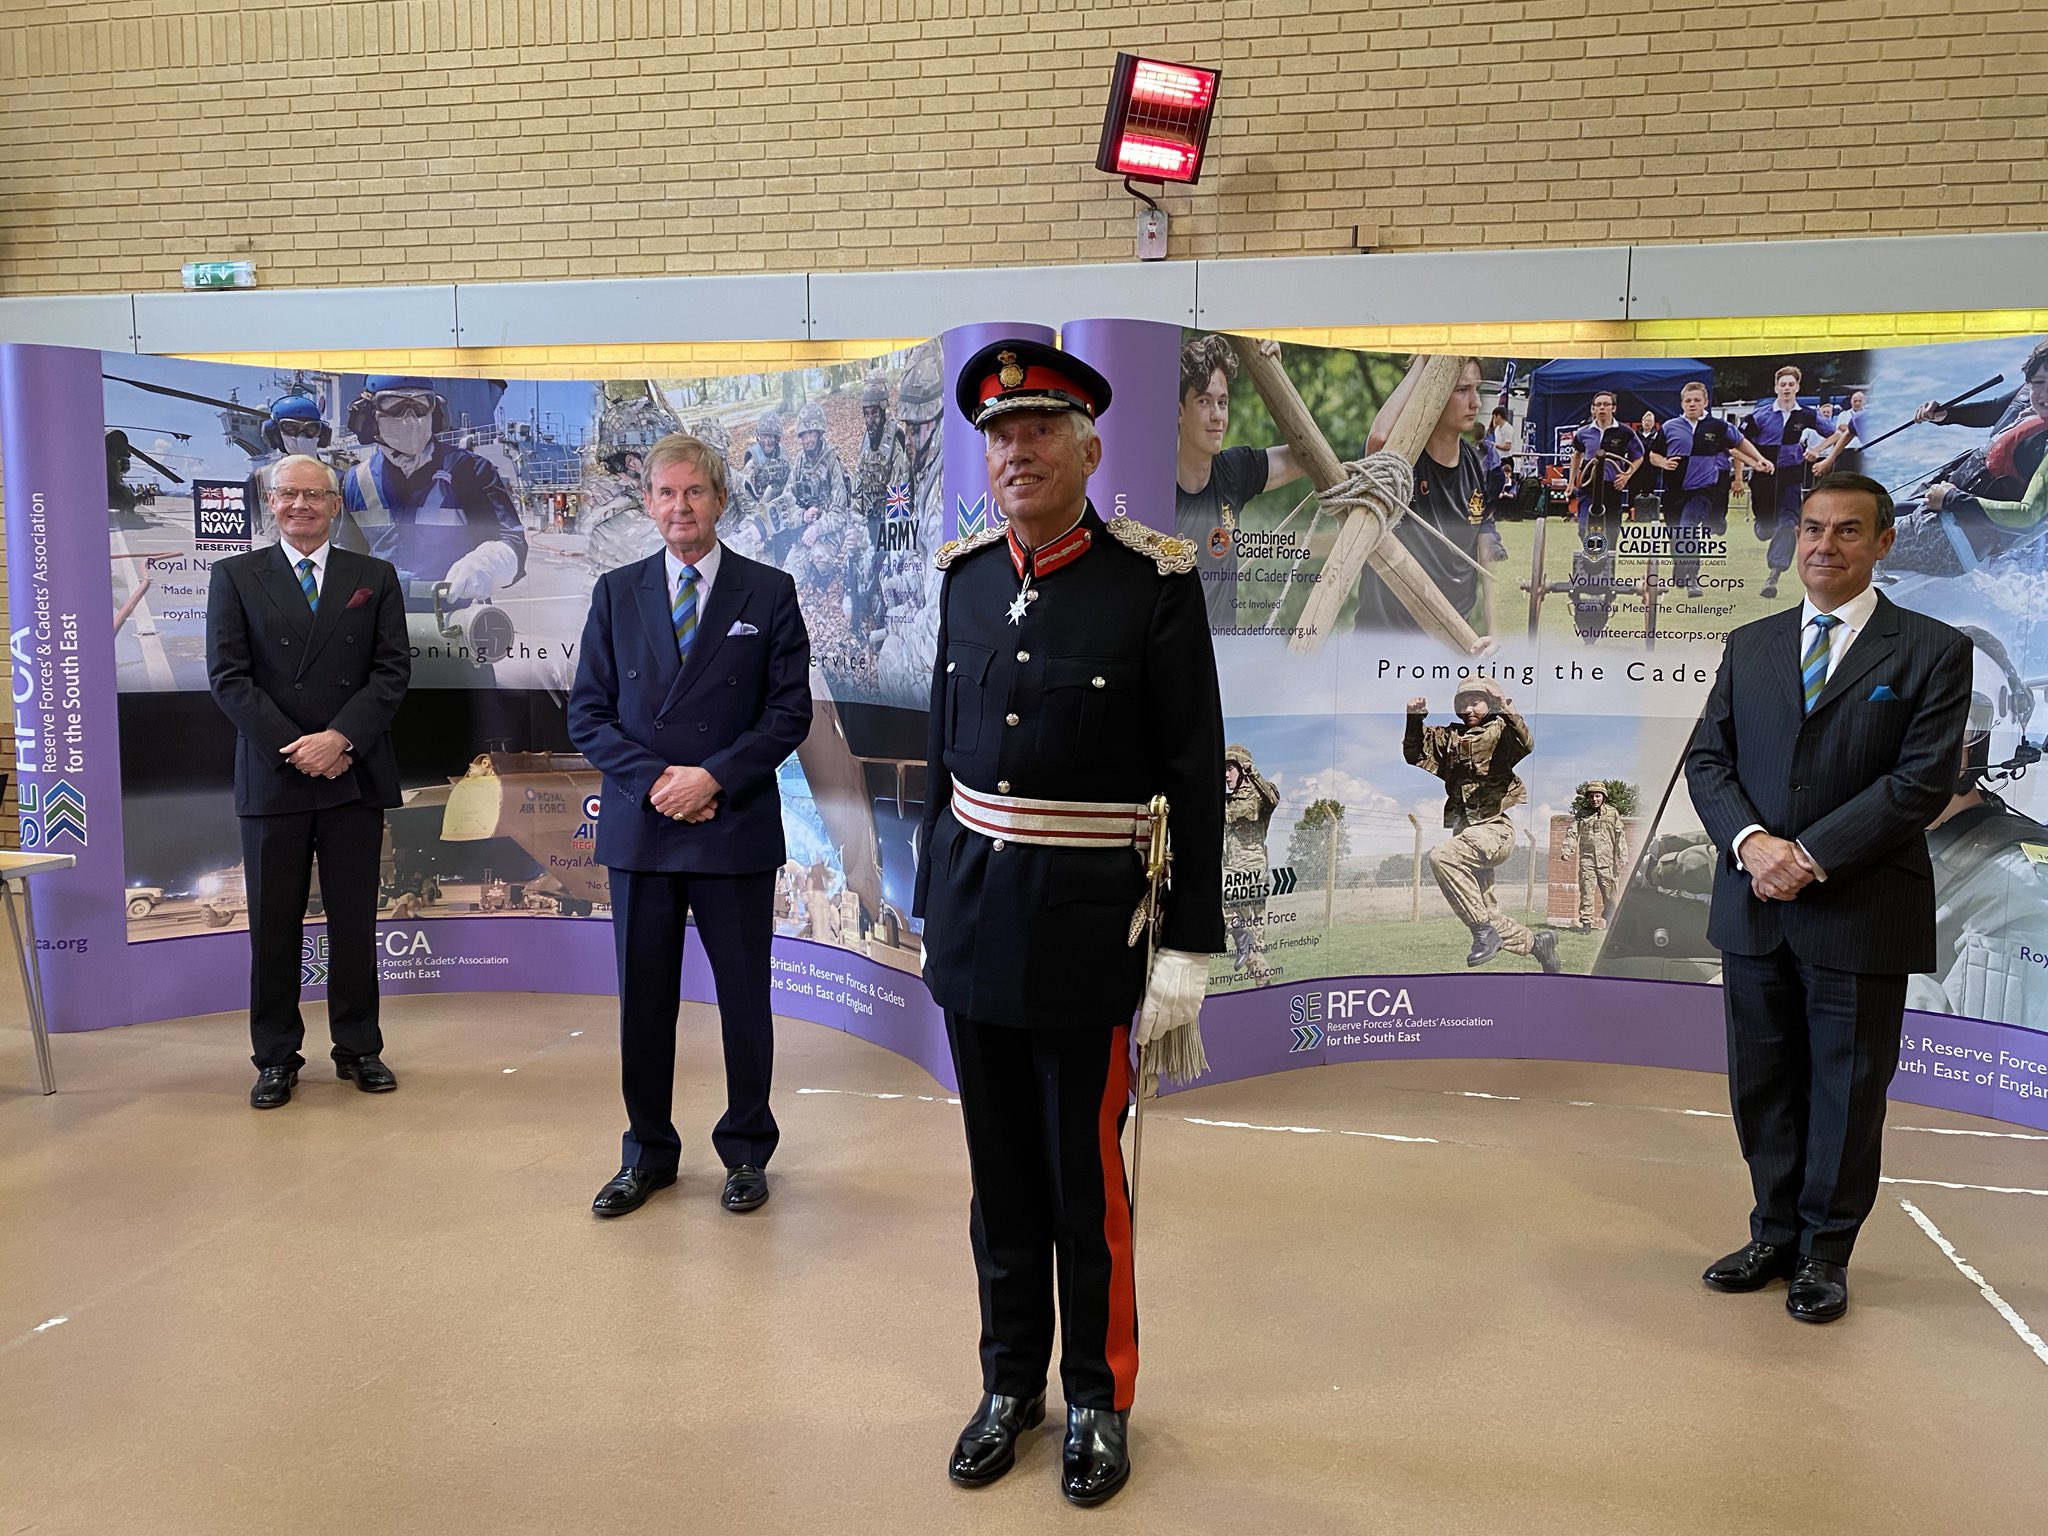 Lord-Lieutenants ATC Cadet for Berkshire Selected